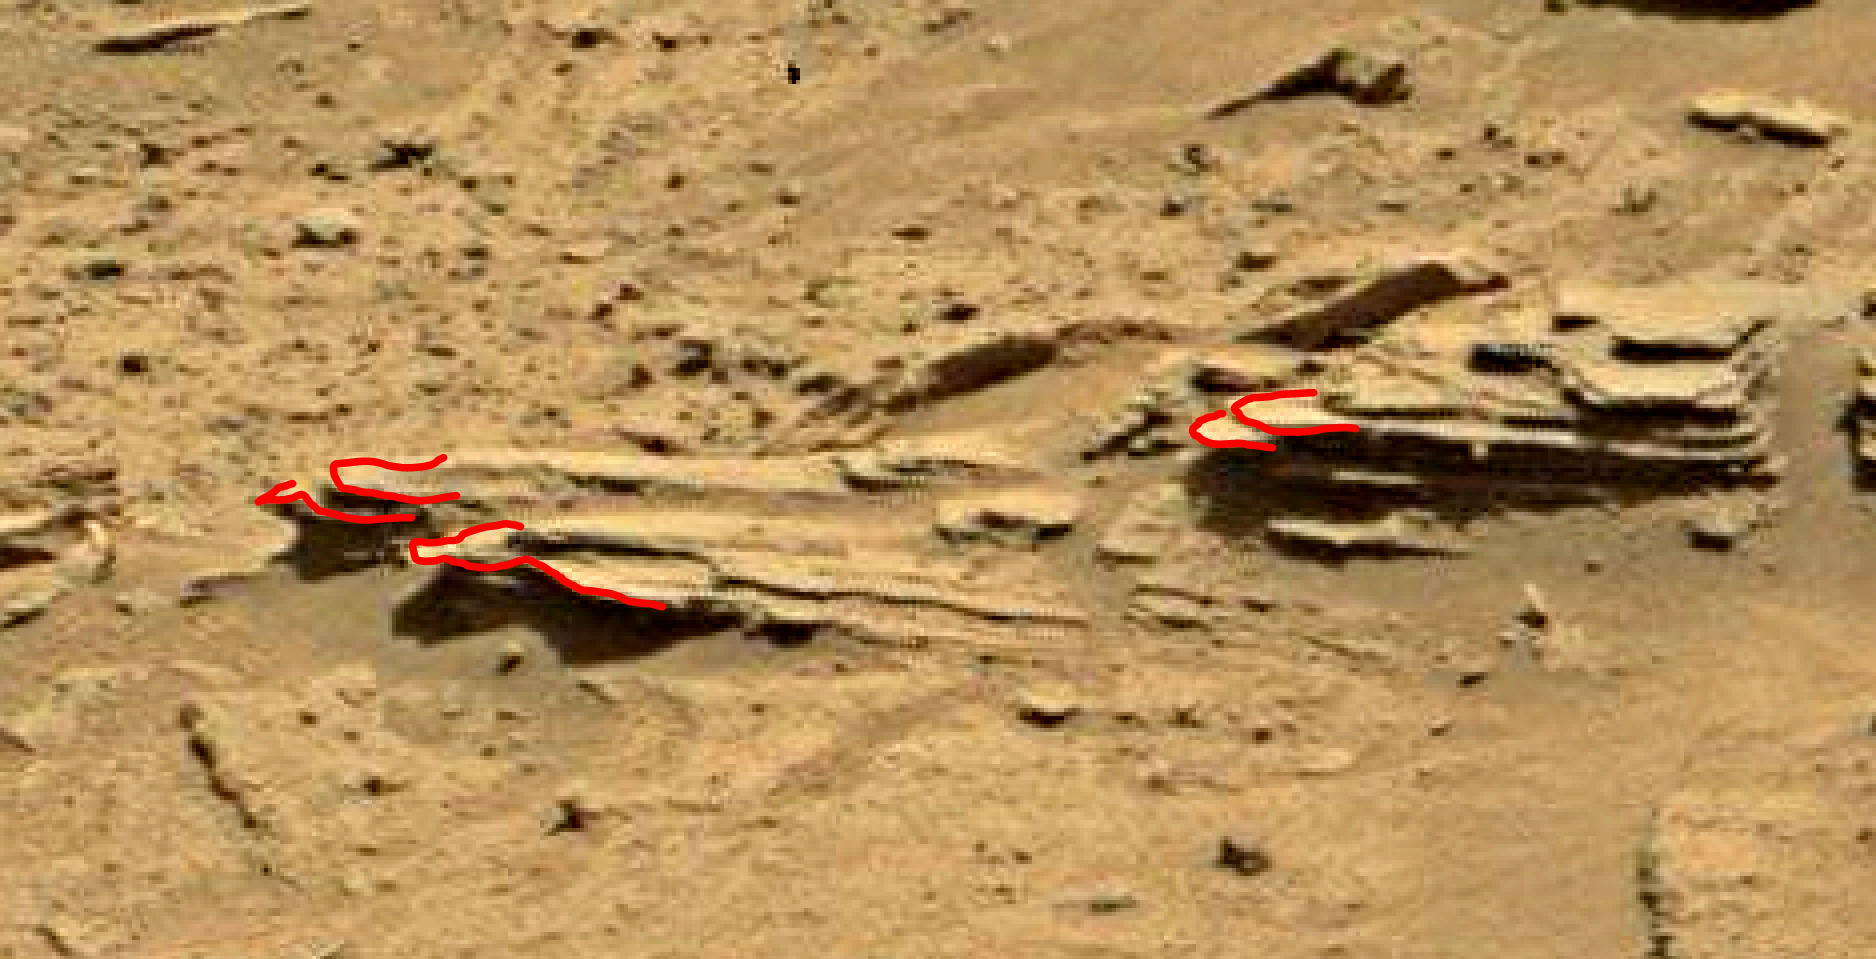 mars sol 1346 anomaly-artifacts 14a was life on mars